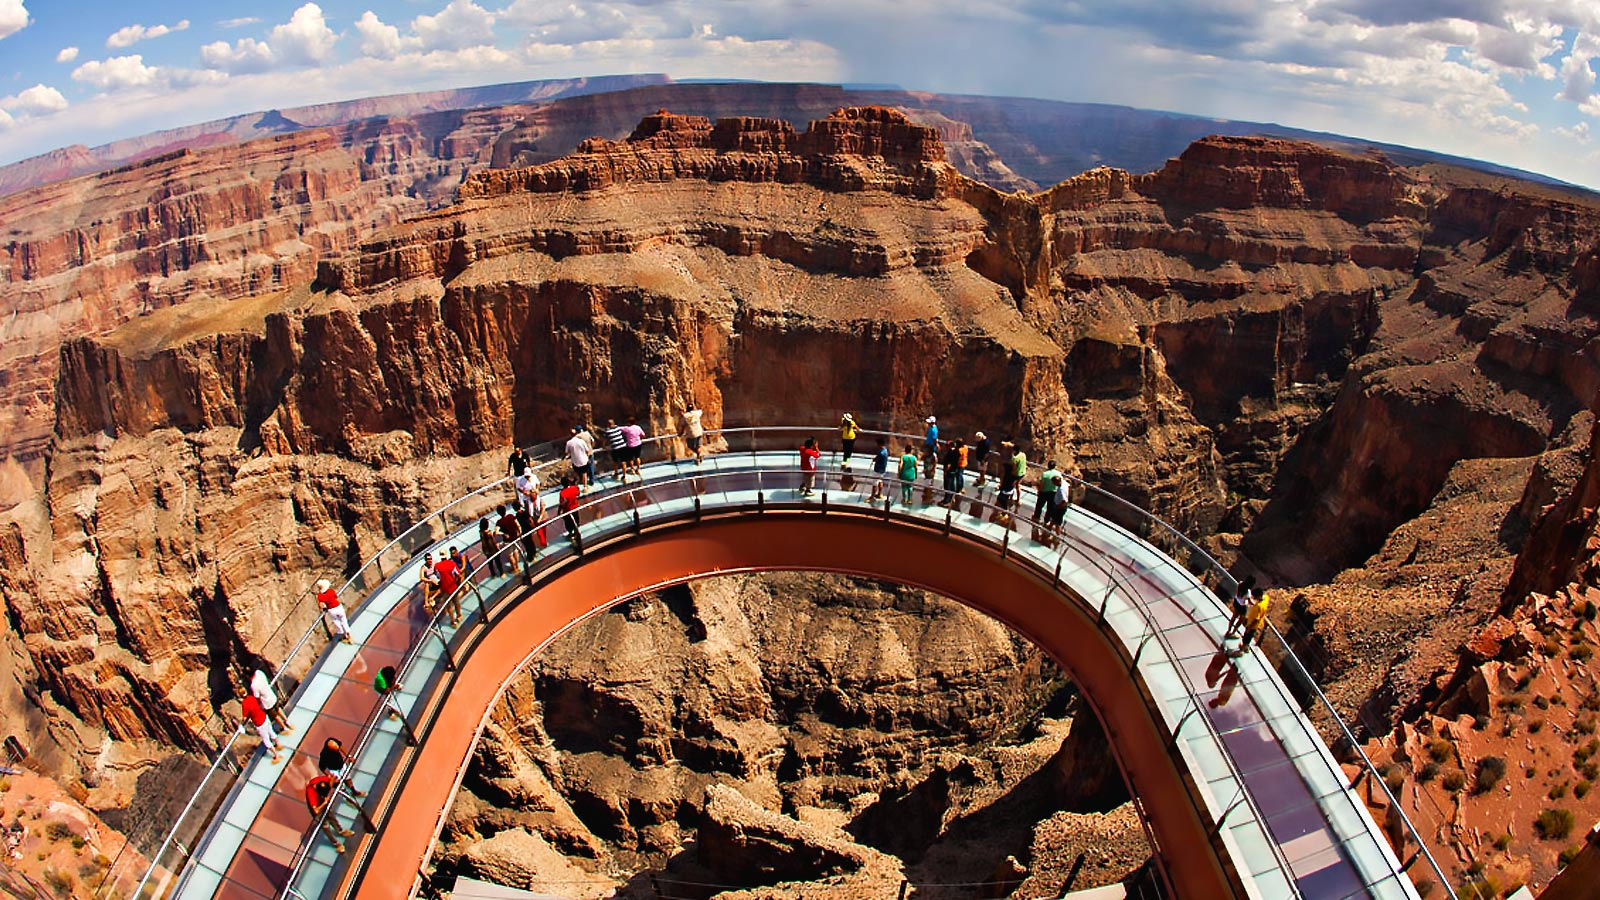 Private Grand Canyon Helicopter Flight and VIP Hualapai Ambassador Guided Tour including Skywalk – $4950